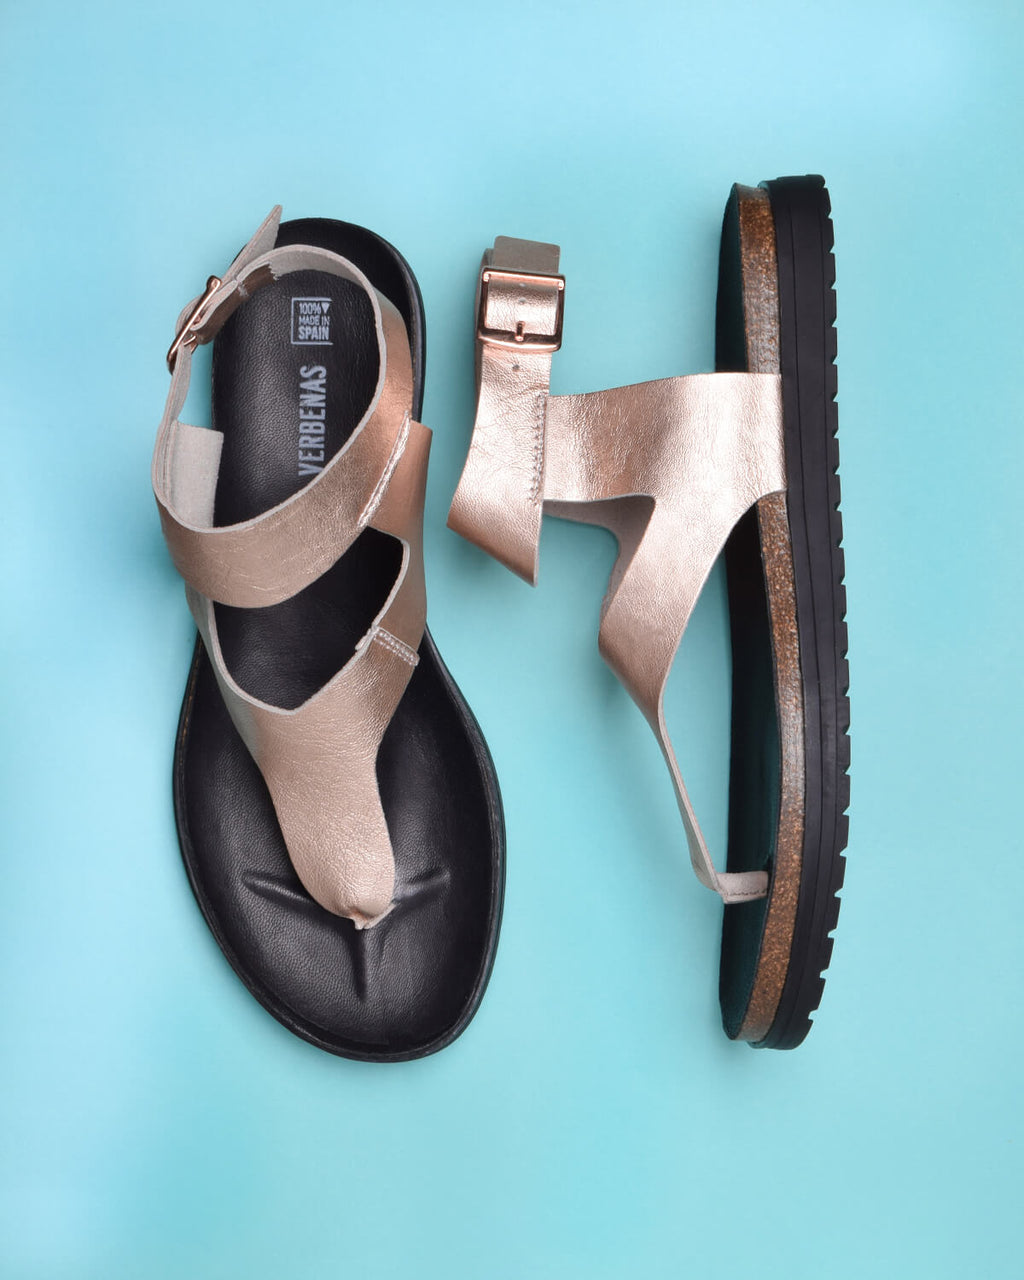 Tesa Metallic Leather Thong Gladiator Sandals - RoseGold